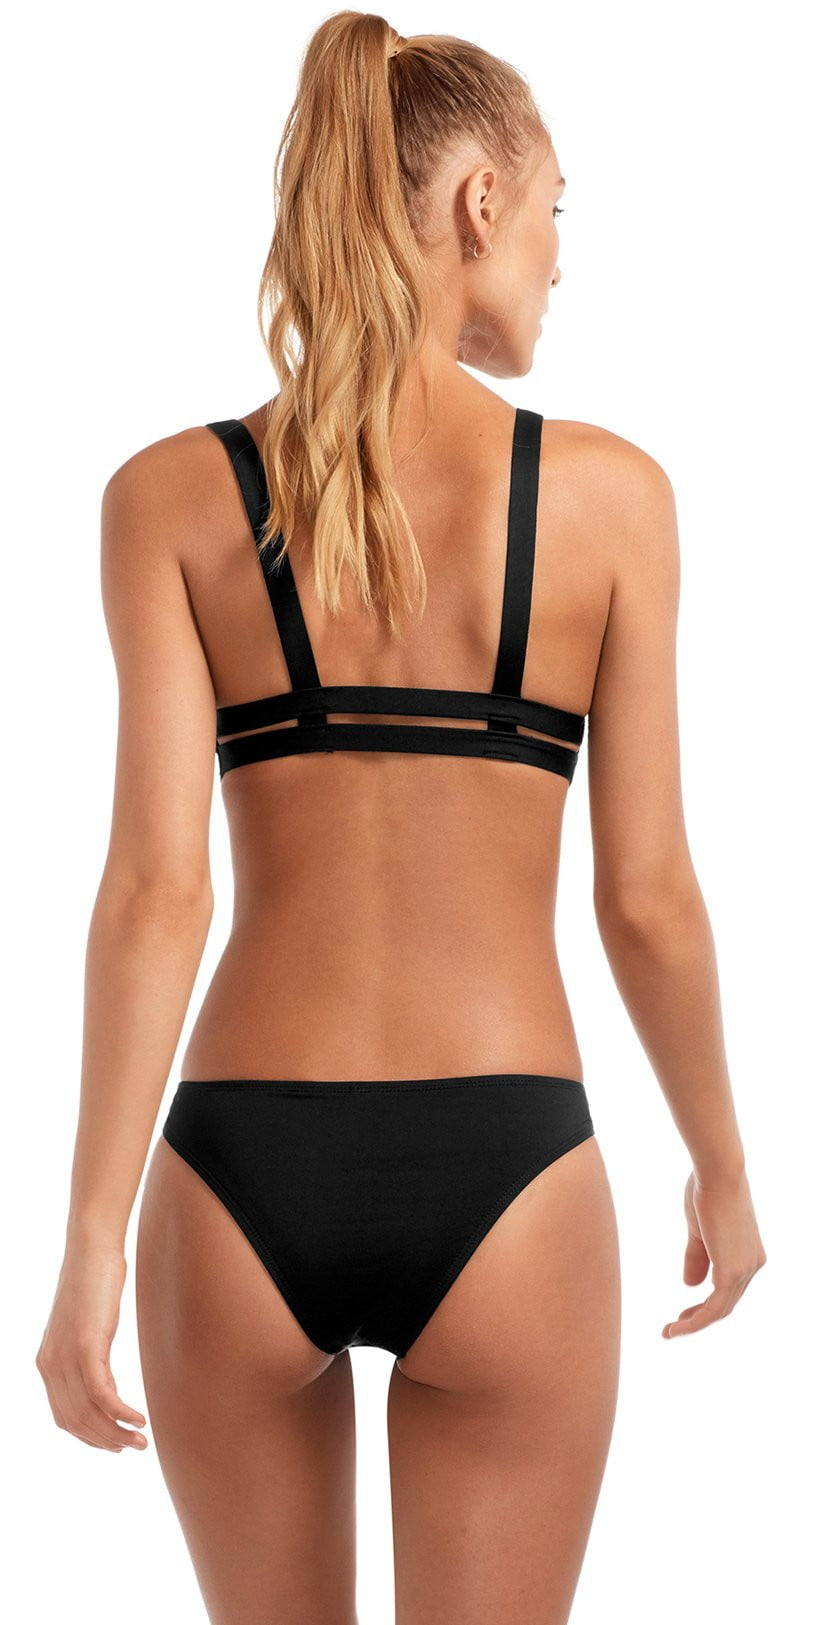 Vitamin A EcoLux Neutra Bralette Top in Black 40T ECB back view of top and bottom